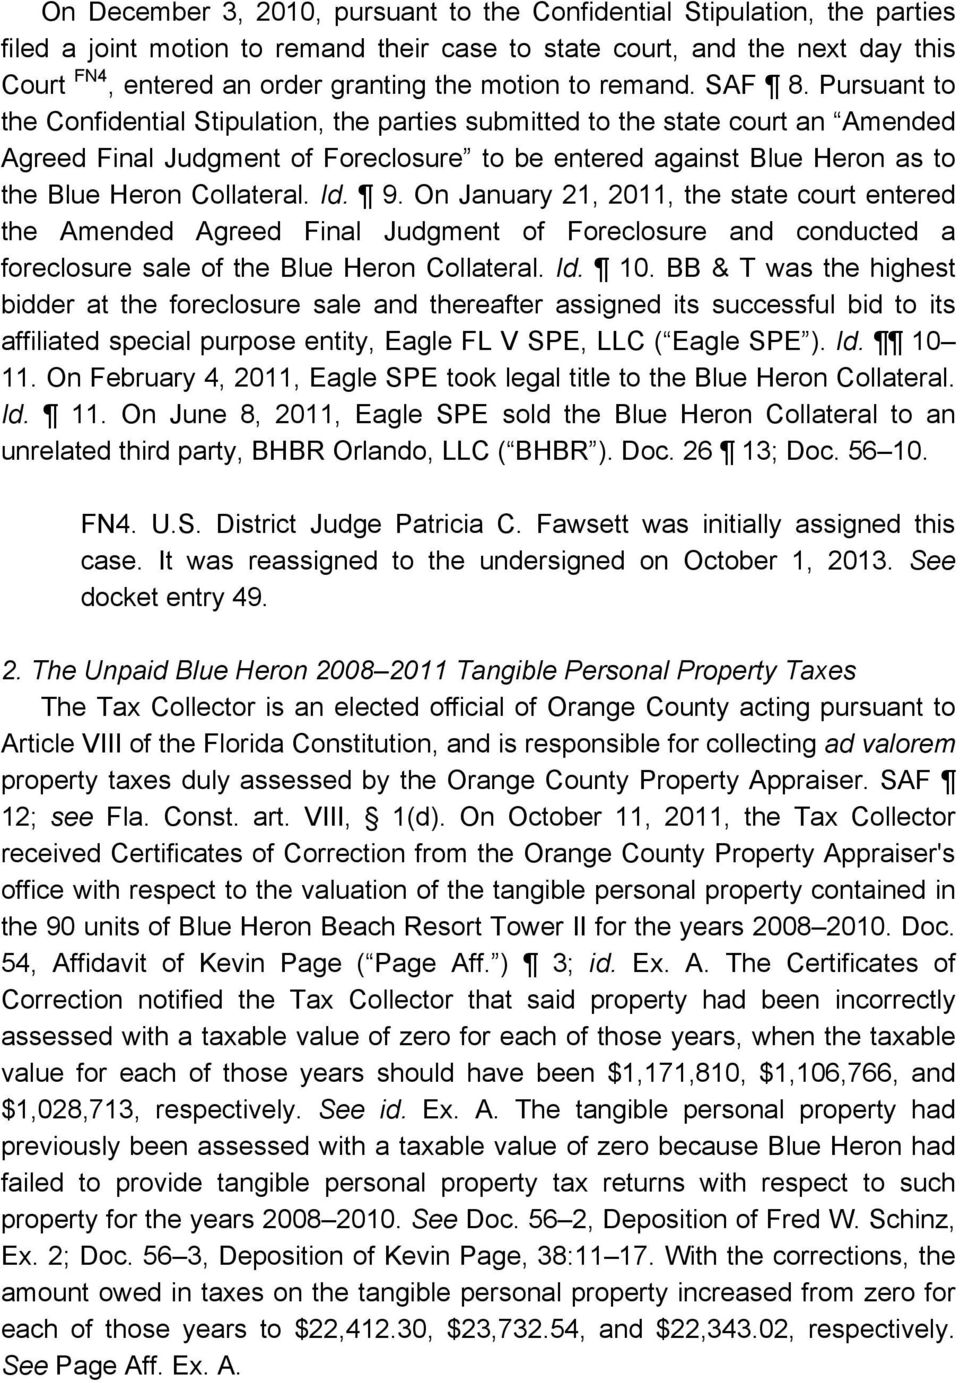 Pursuant to the Confidential Stipulation, the parties submitted to the state court an Amended Agreed Final Judgment of Foreclosure to be entered against Blue Heron as to the Blue Heron Collateral. Id.